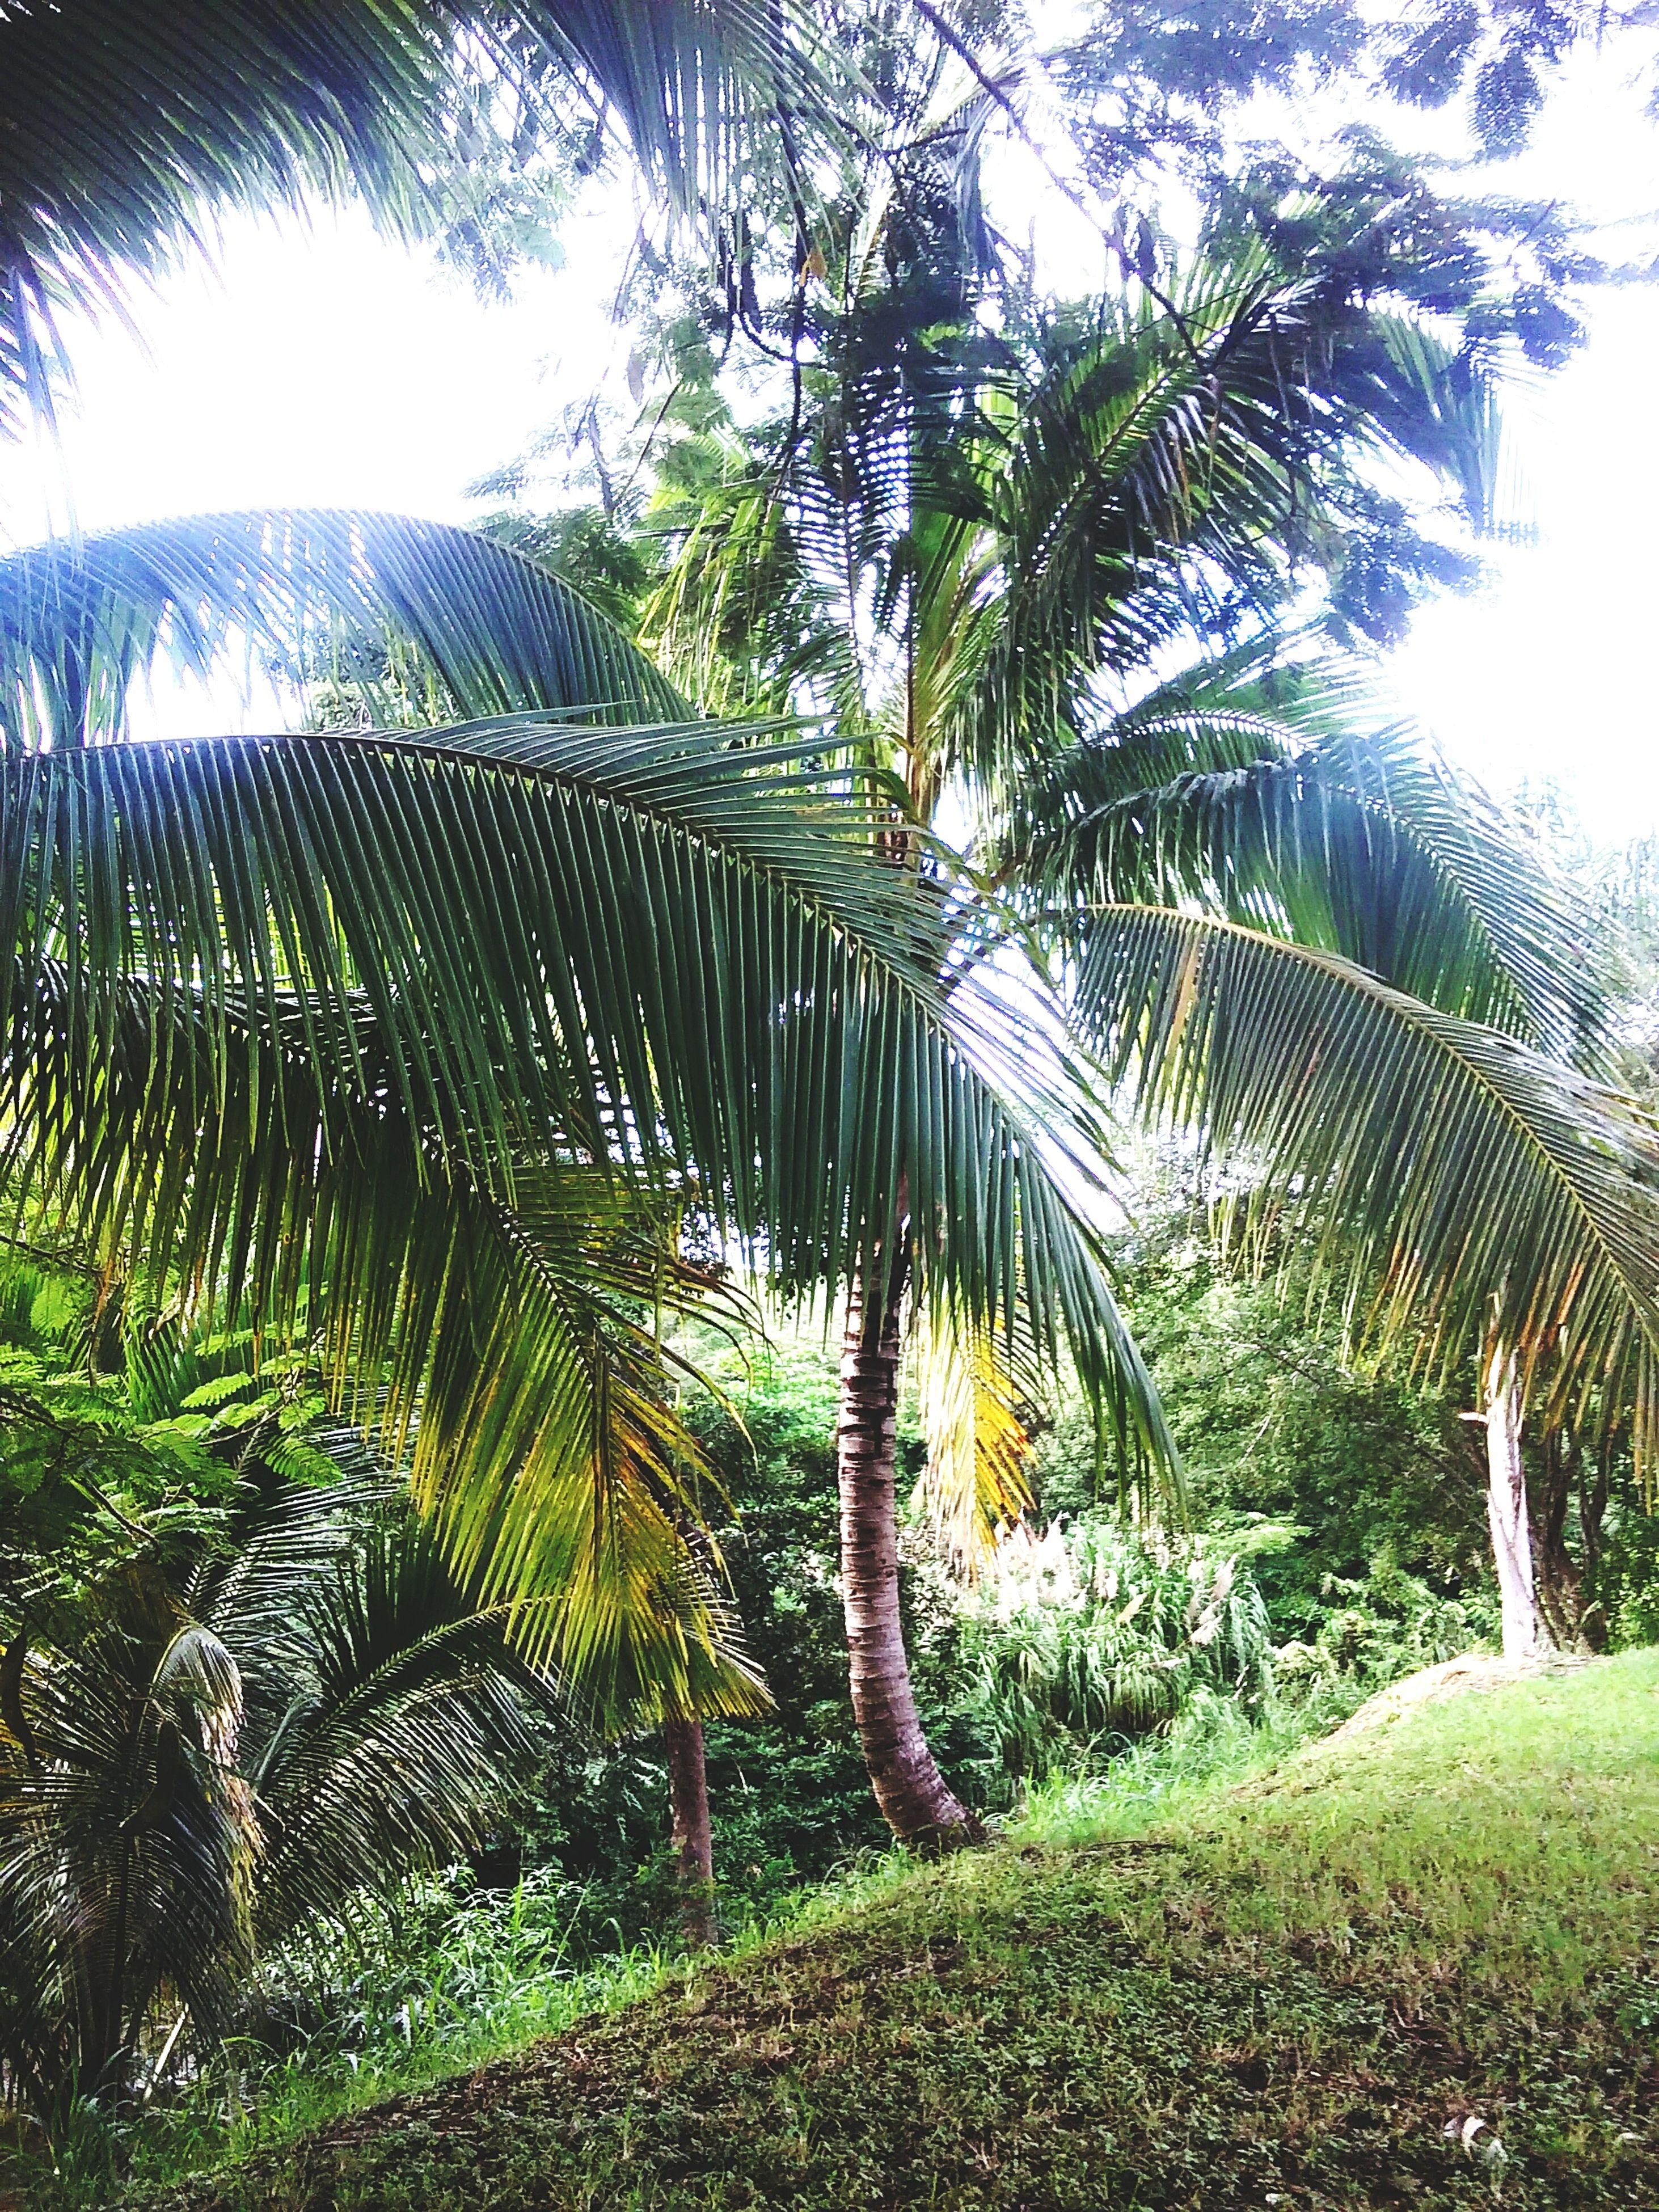 tree, growth, tranquility, green color, nature, plant, tranquil scene, sunlight, palm tree, beauty in nature, fence, branch, field, clear sky, scenics, sky, day, outdoors, low angle view, tree trunk